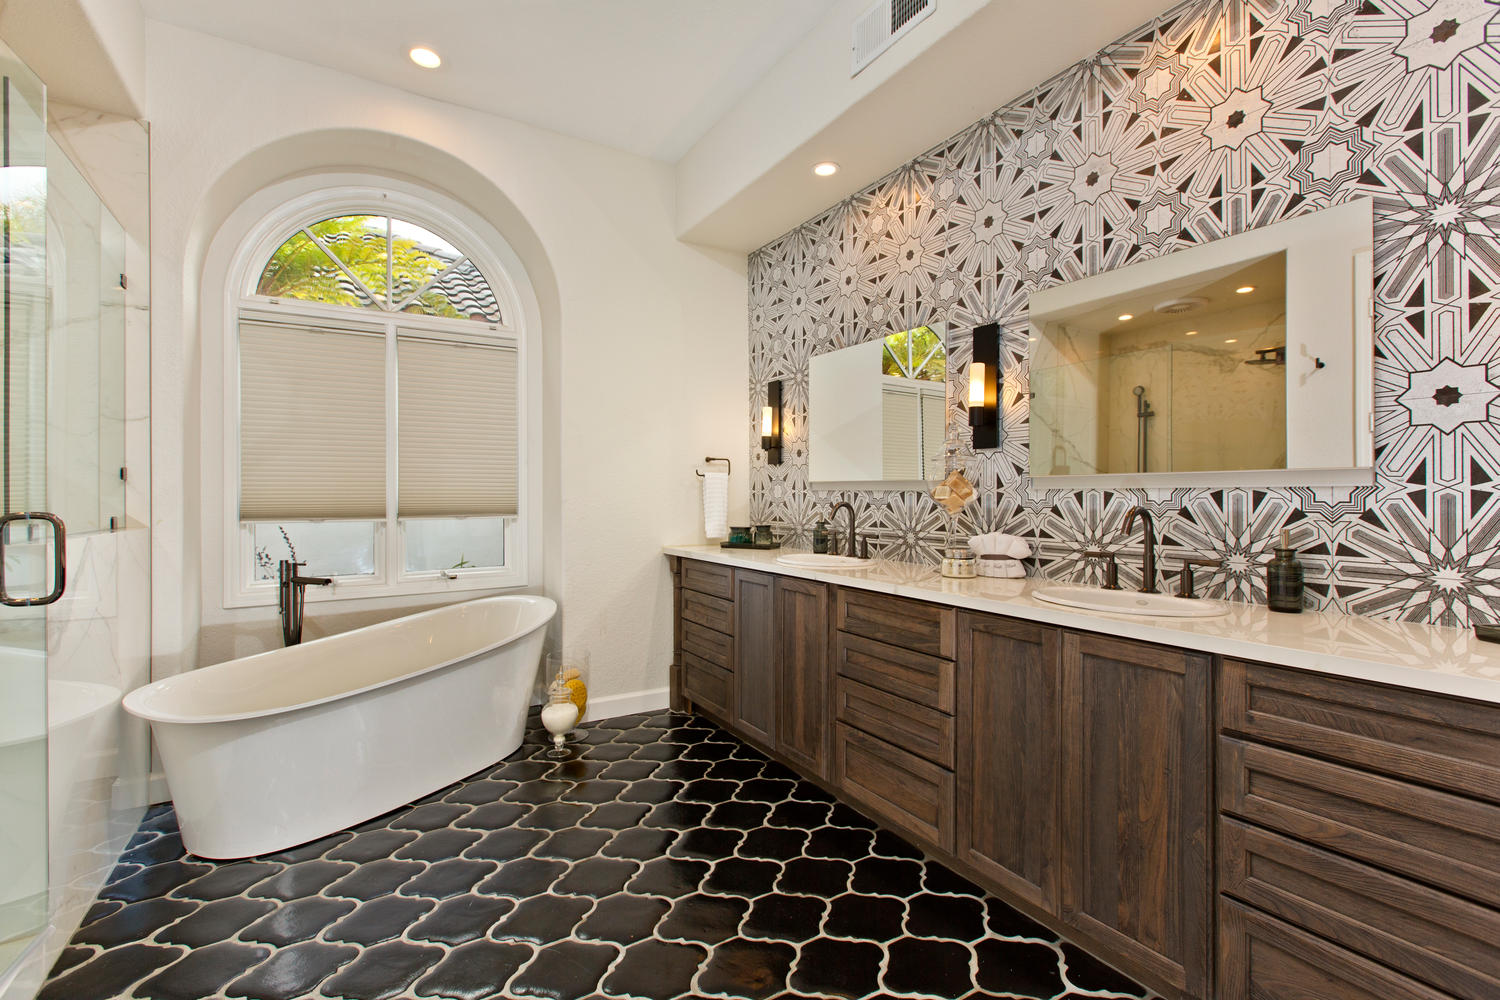 Houzz Room of the Day: Art Deco Tile Dazzles in a Master ...